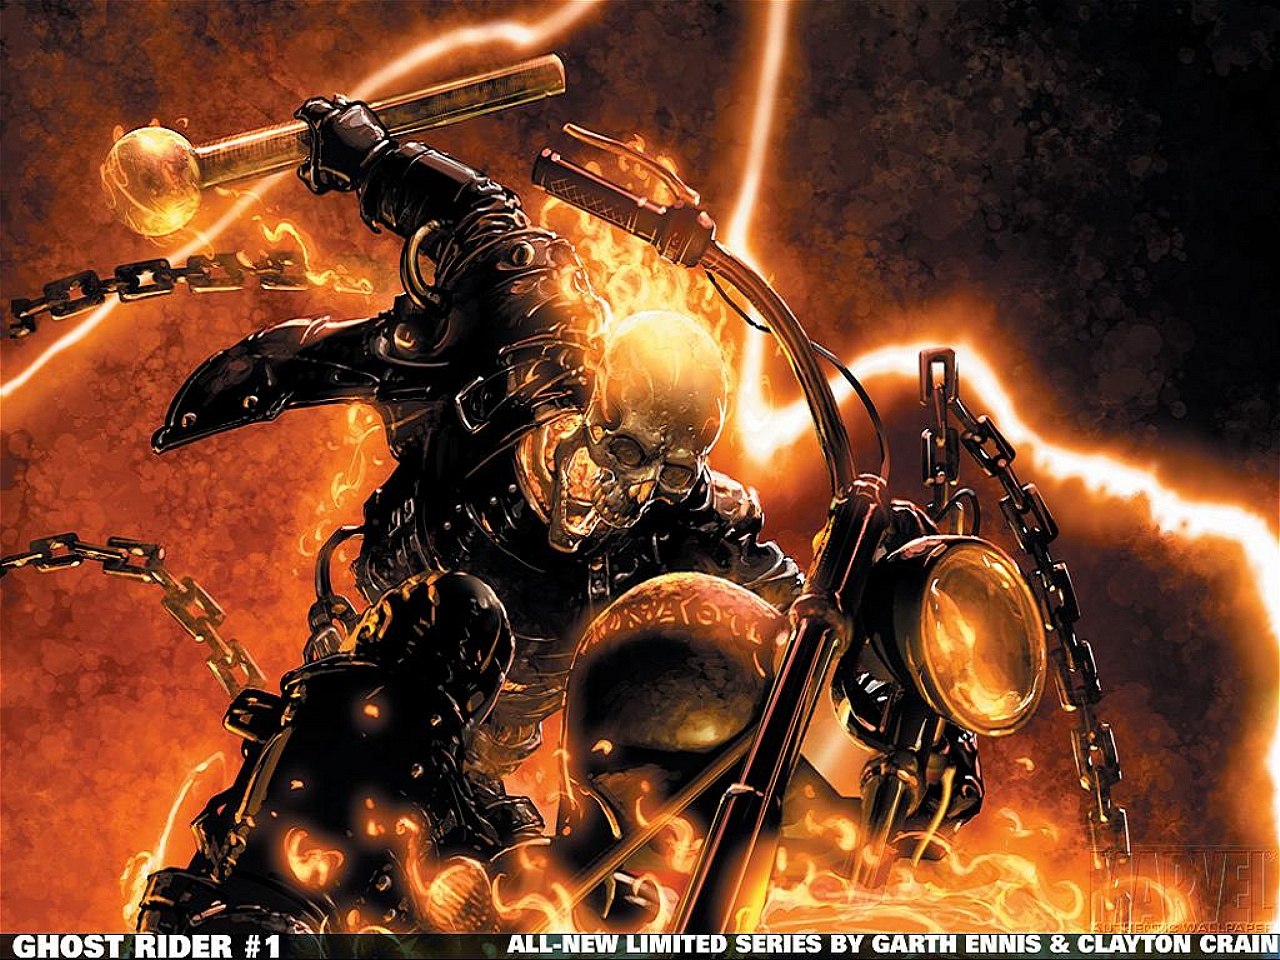 The Ghost Rider Wallpaper 1280x960